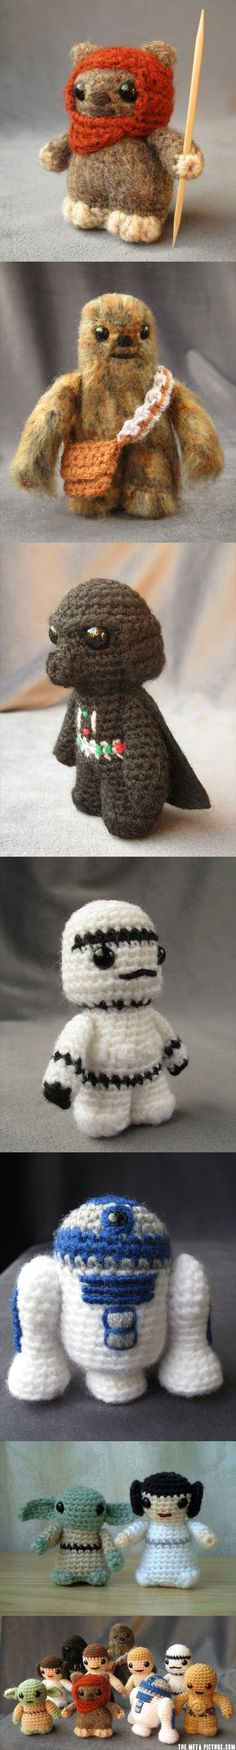 Star wars! Cute!